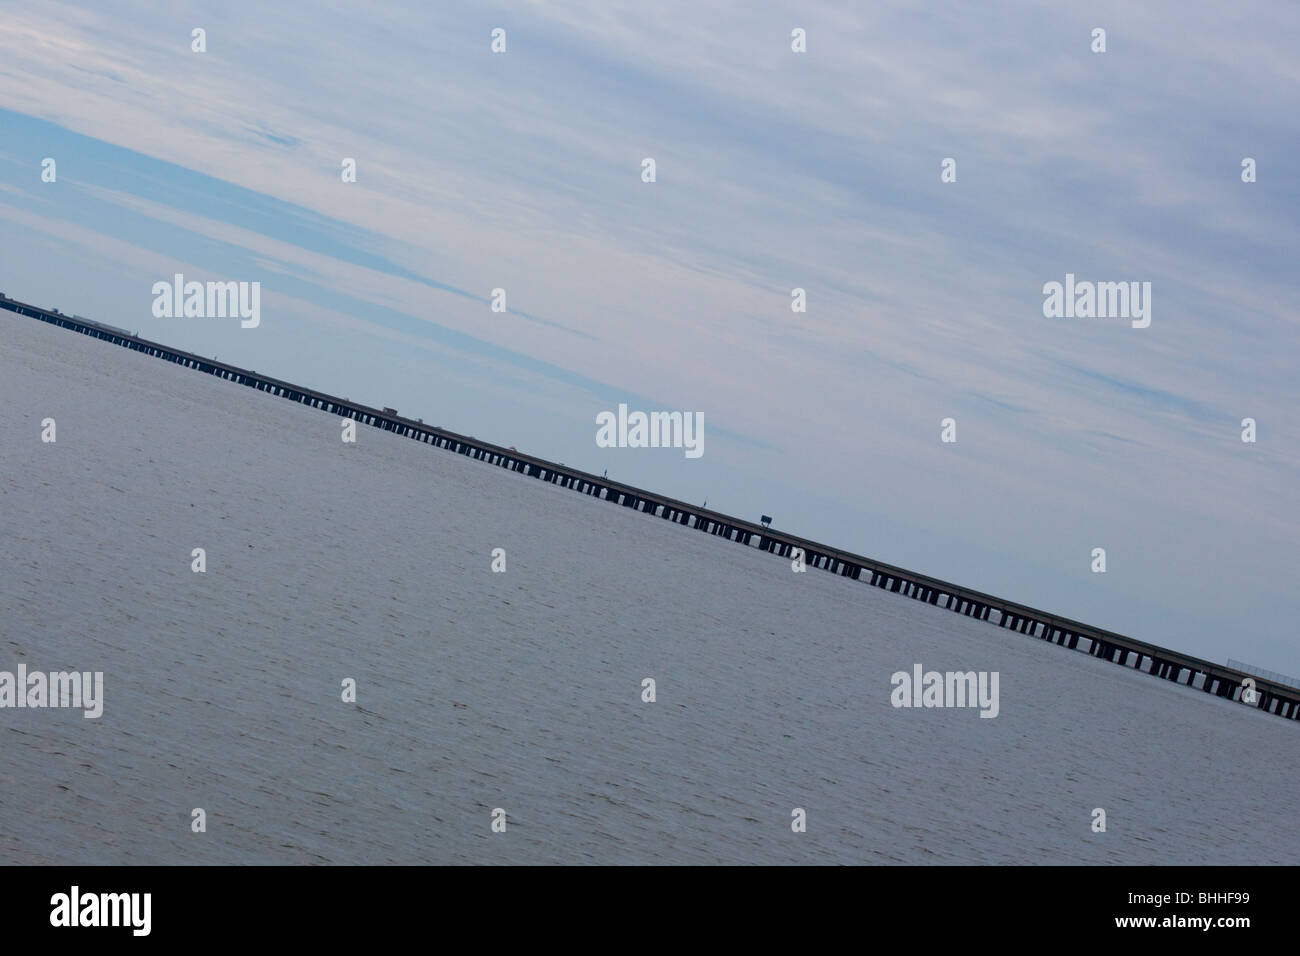 Lake Pontchartrain Causeway Is Longest Bridge In The USA To Go - Longest bridge in the usa